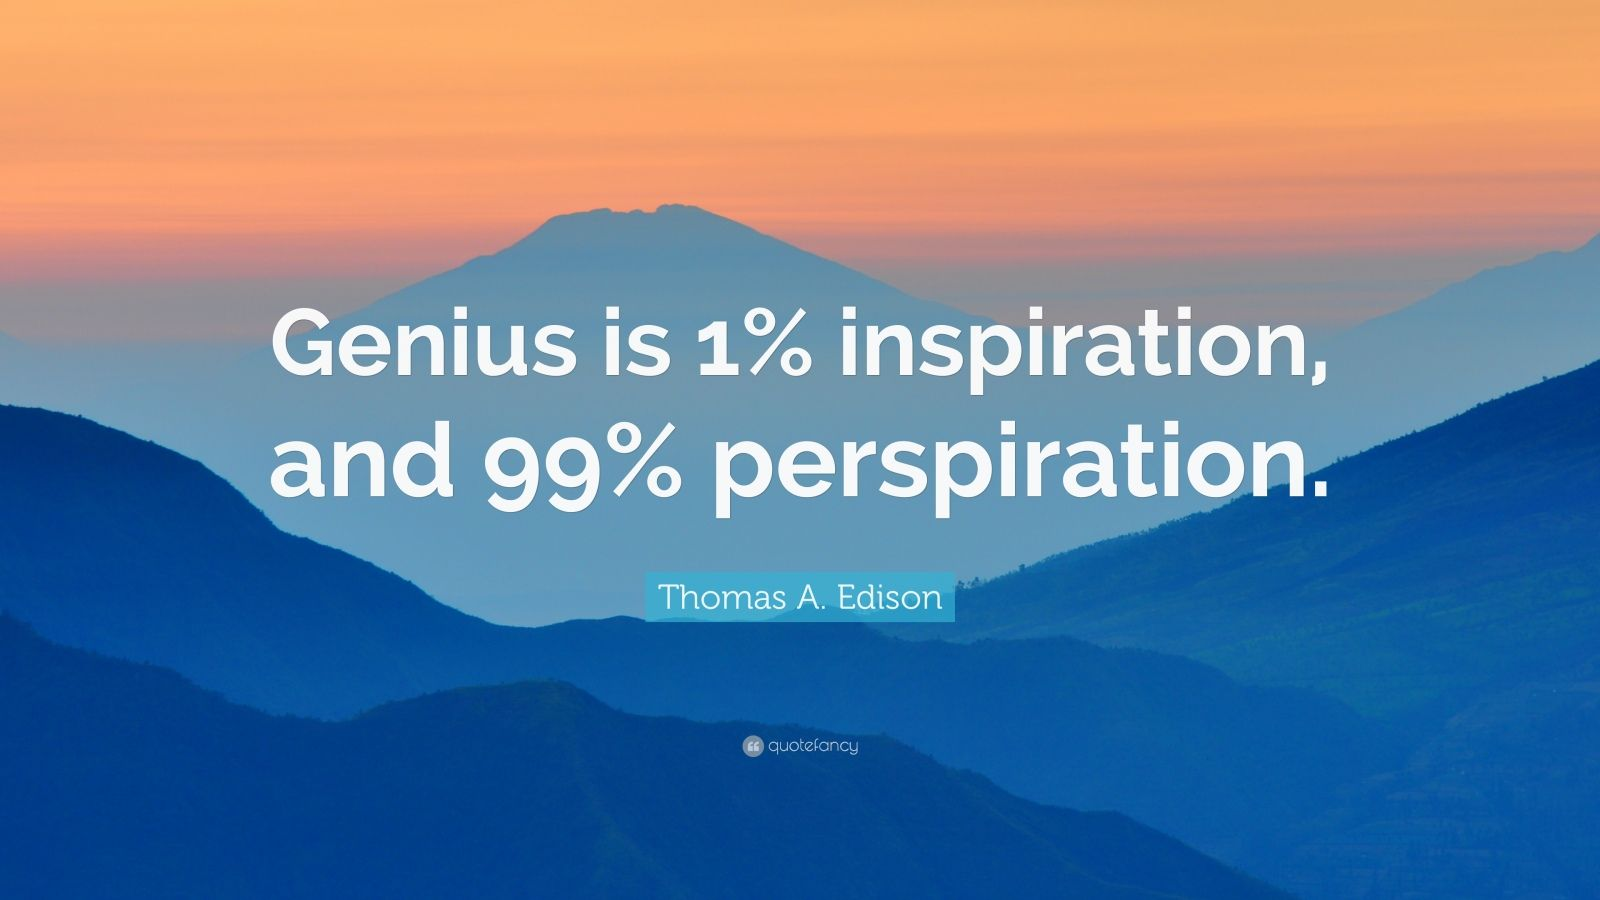 Elon Musk Quotes Wallpaper Thomas A Edison Quote Genius Is 1 Inspiration And 99